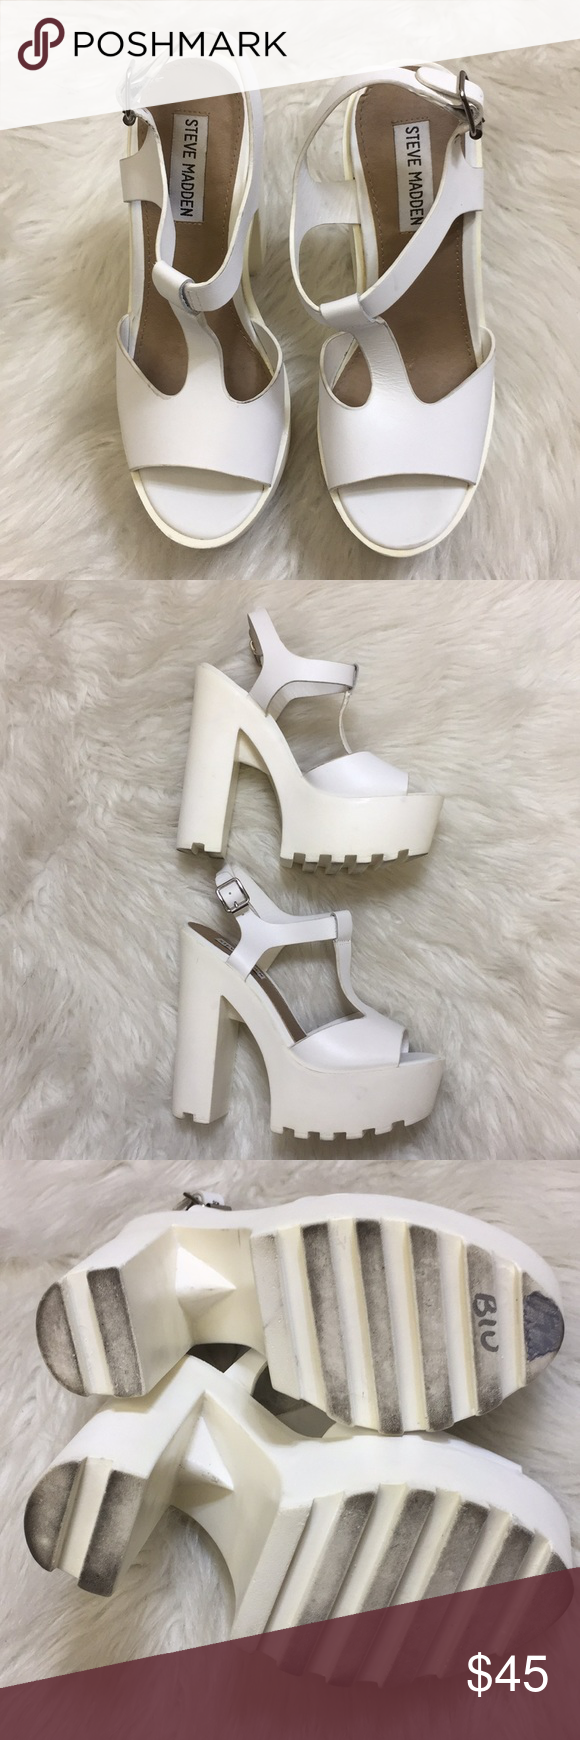 "3c16f9ee890 Steve Madden ""Girl Talk"" White Leather Shoes 6.5 Comfortable ..."